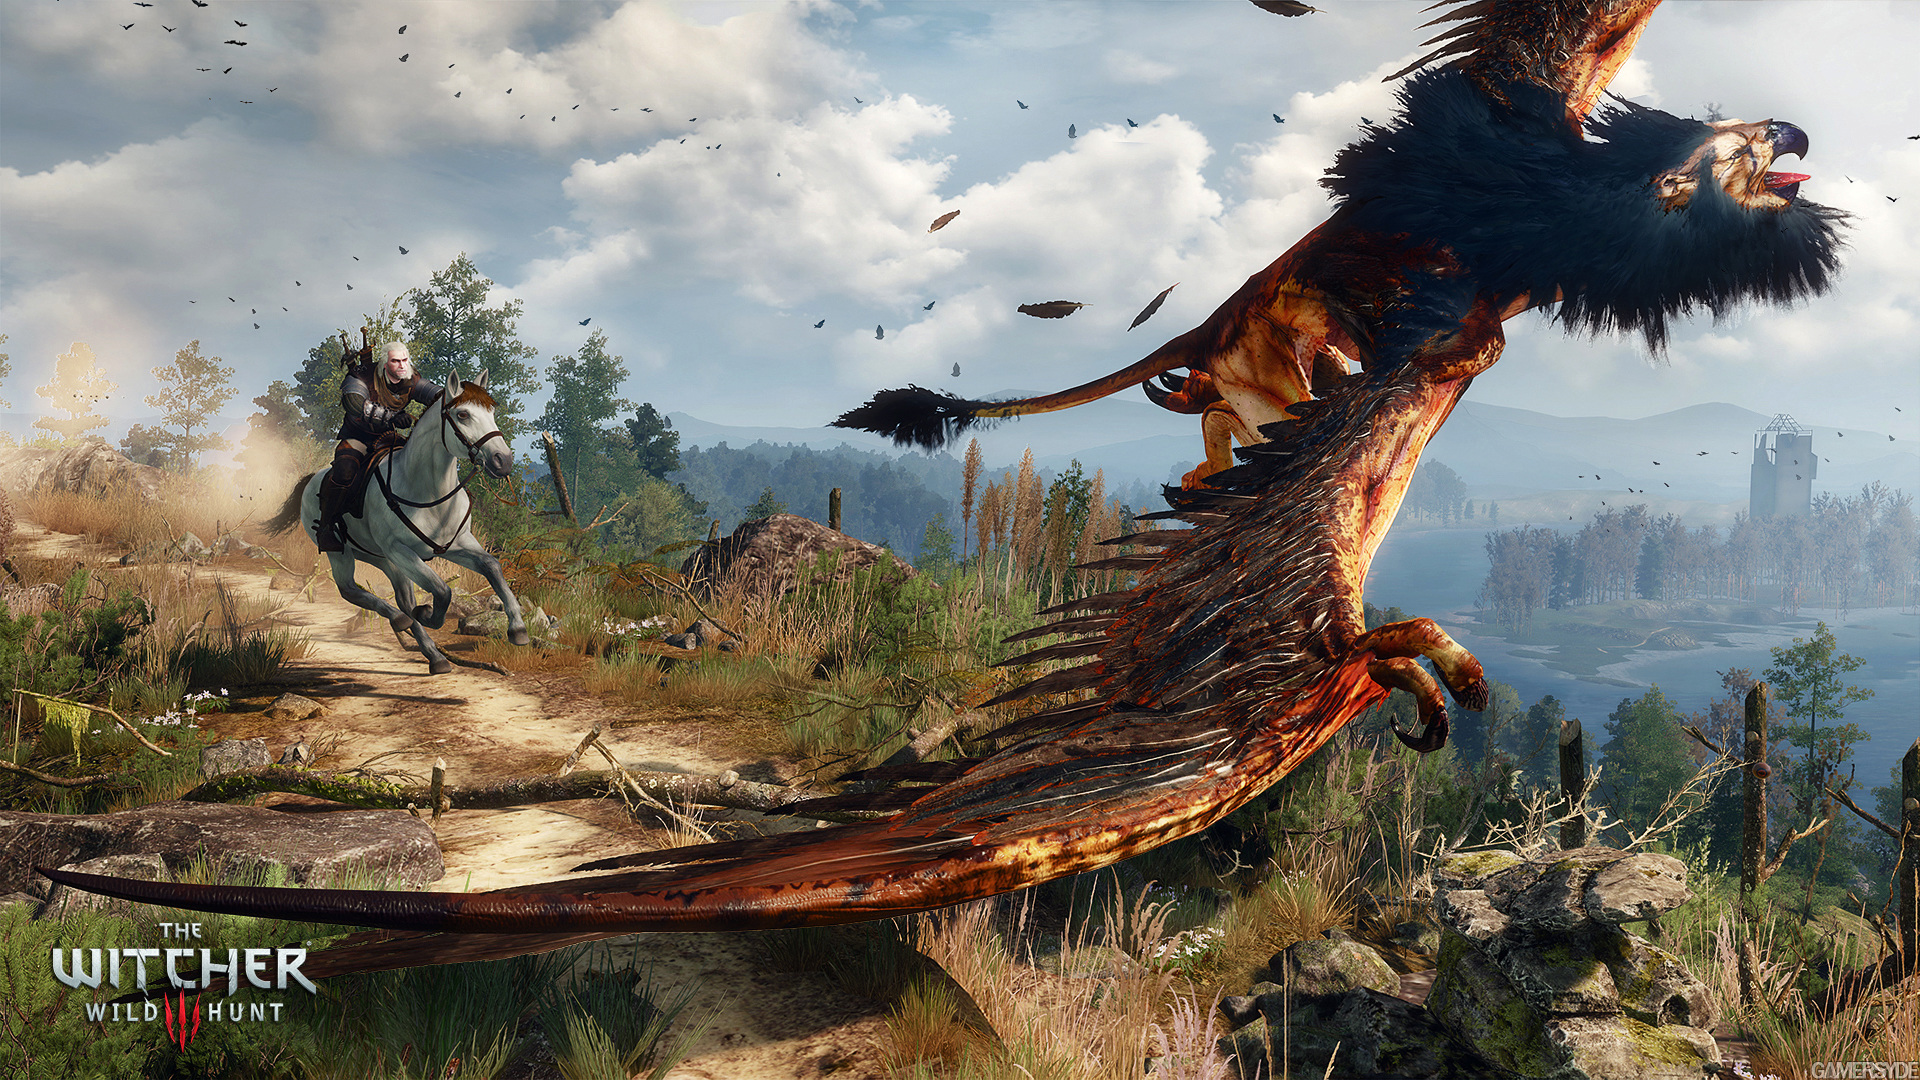 image_the_witcher_3_wild_hunt-27433-2651_0010